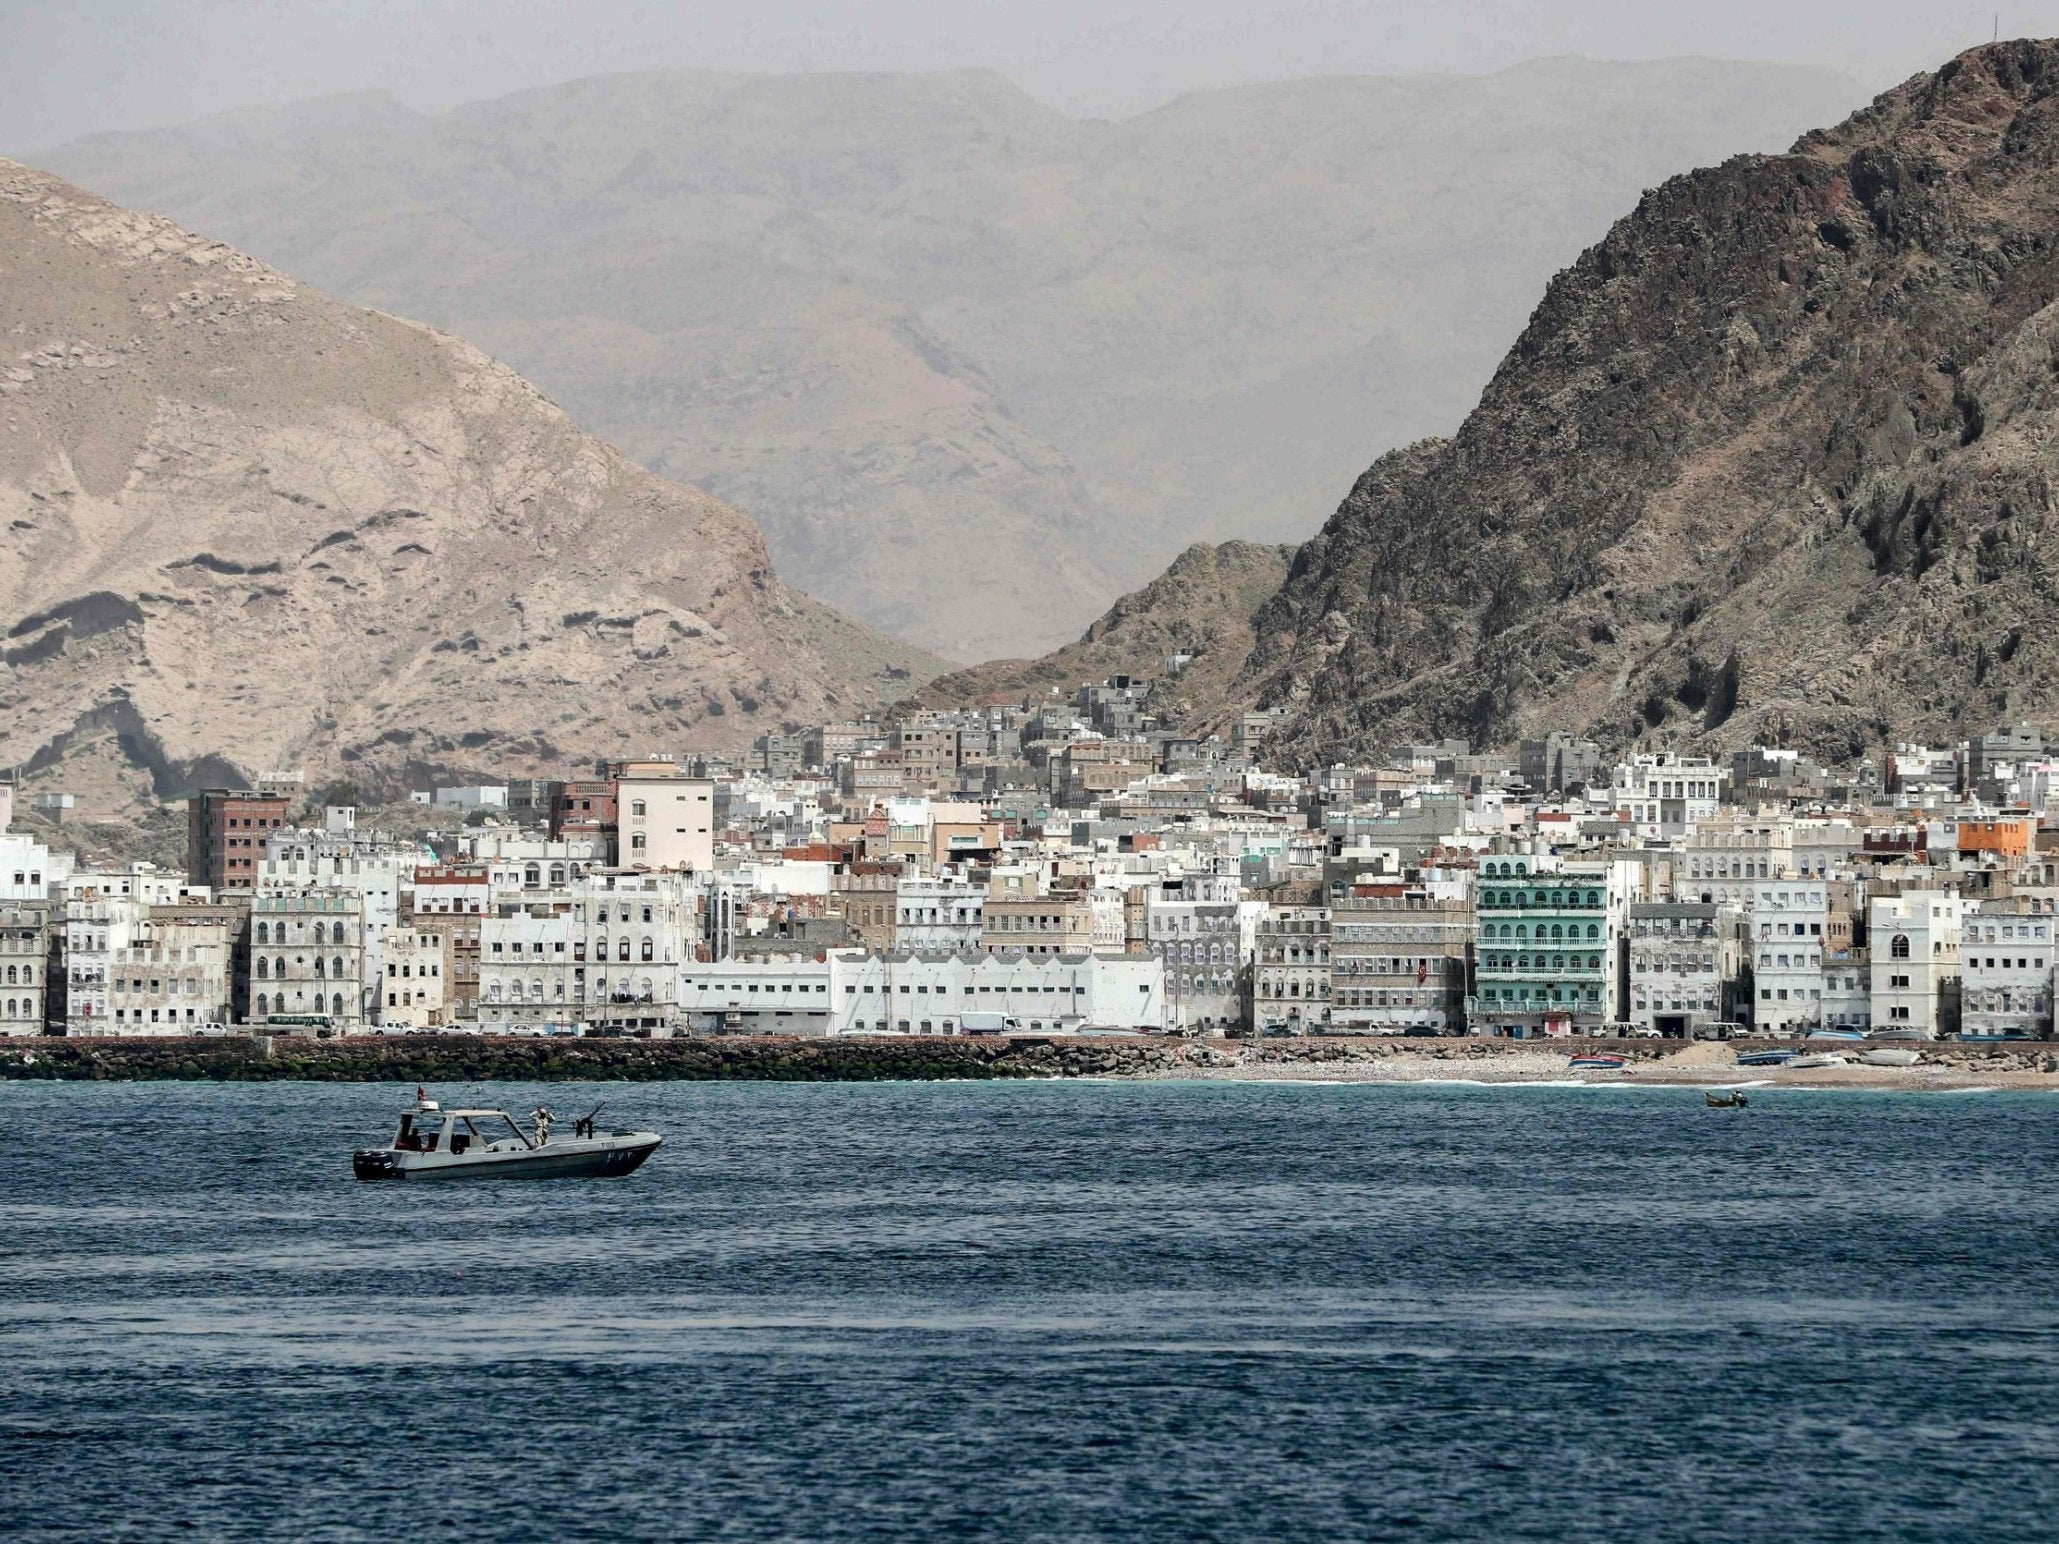 mukalla life after al qaeda in yemen the independent